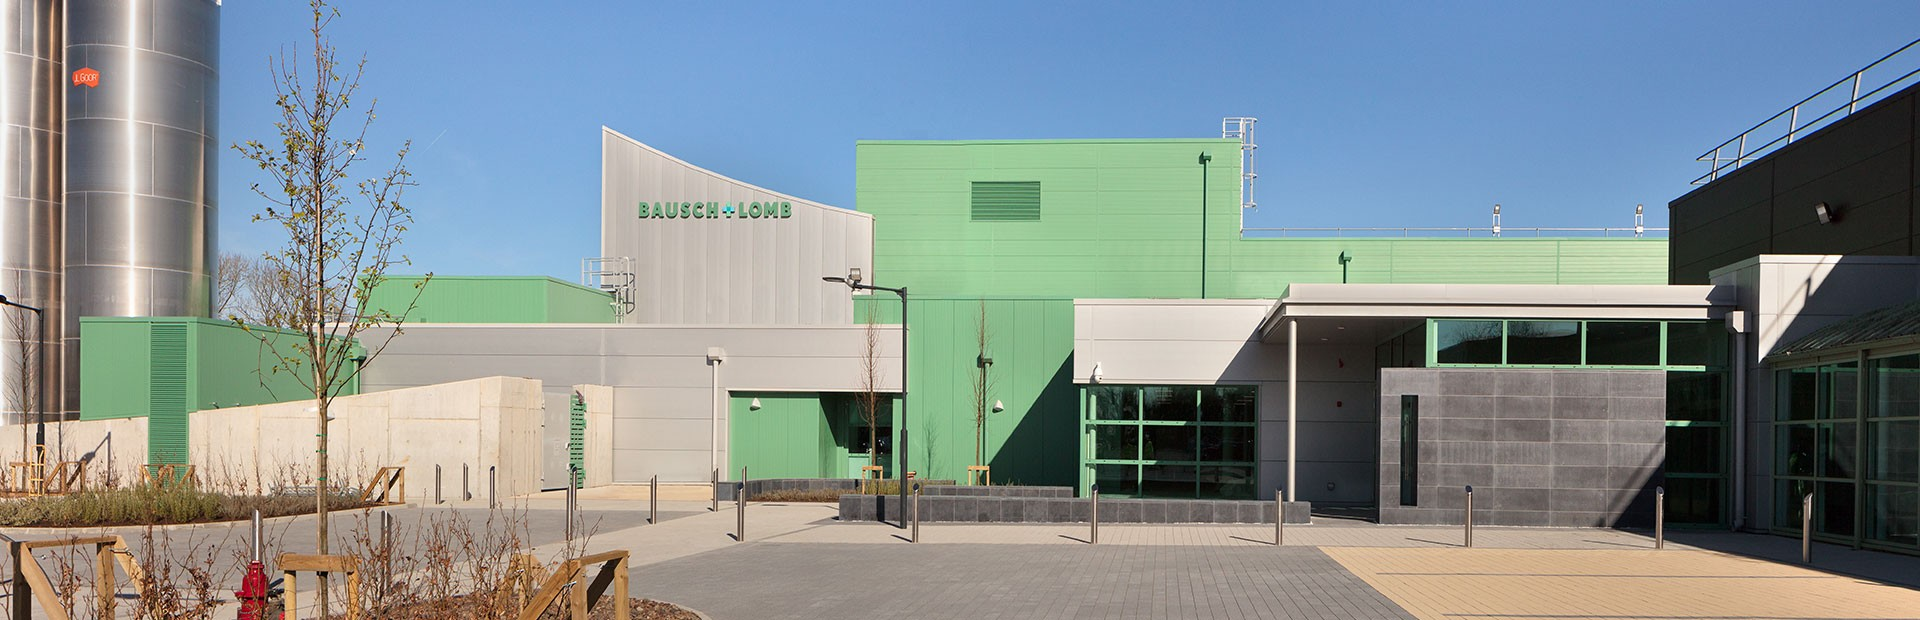 Bausch + Lomb Ireland - Industrial / Pharmaceutical Construction